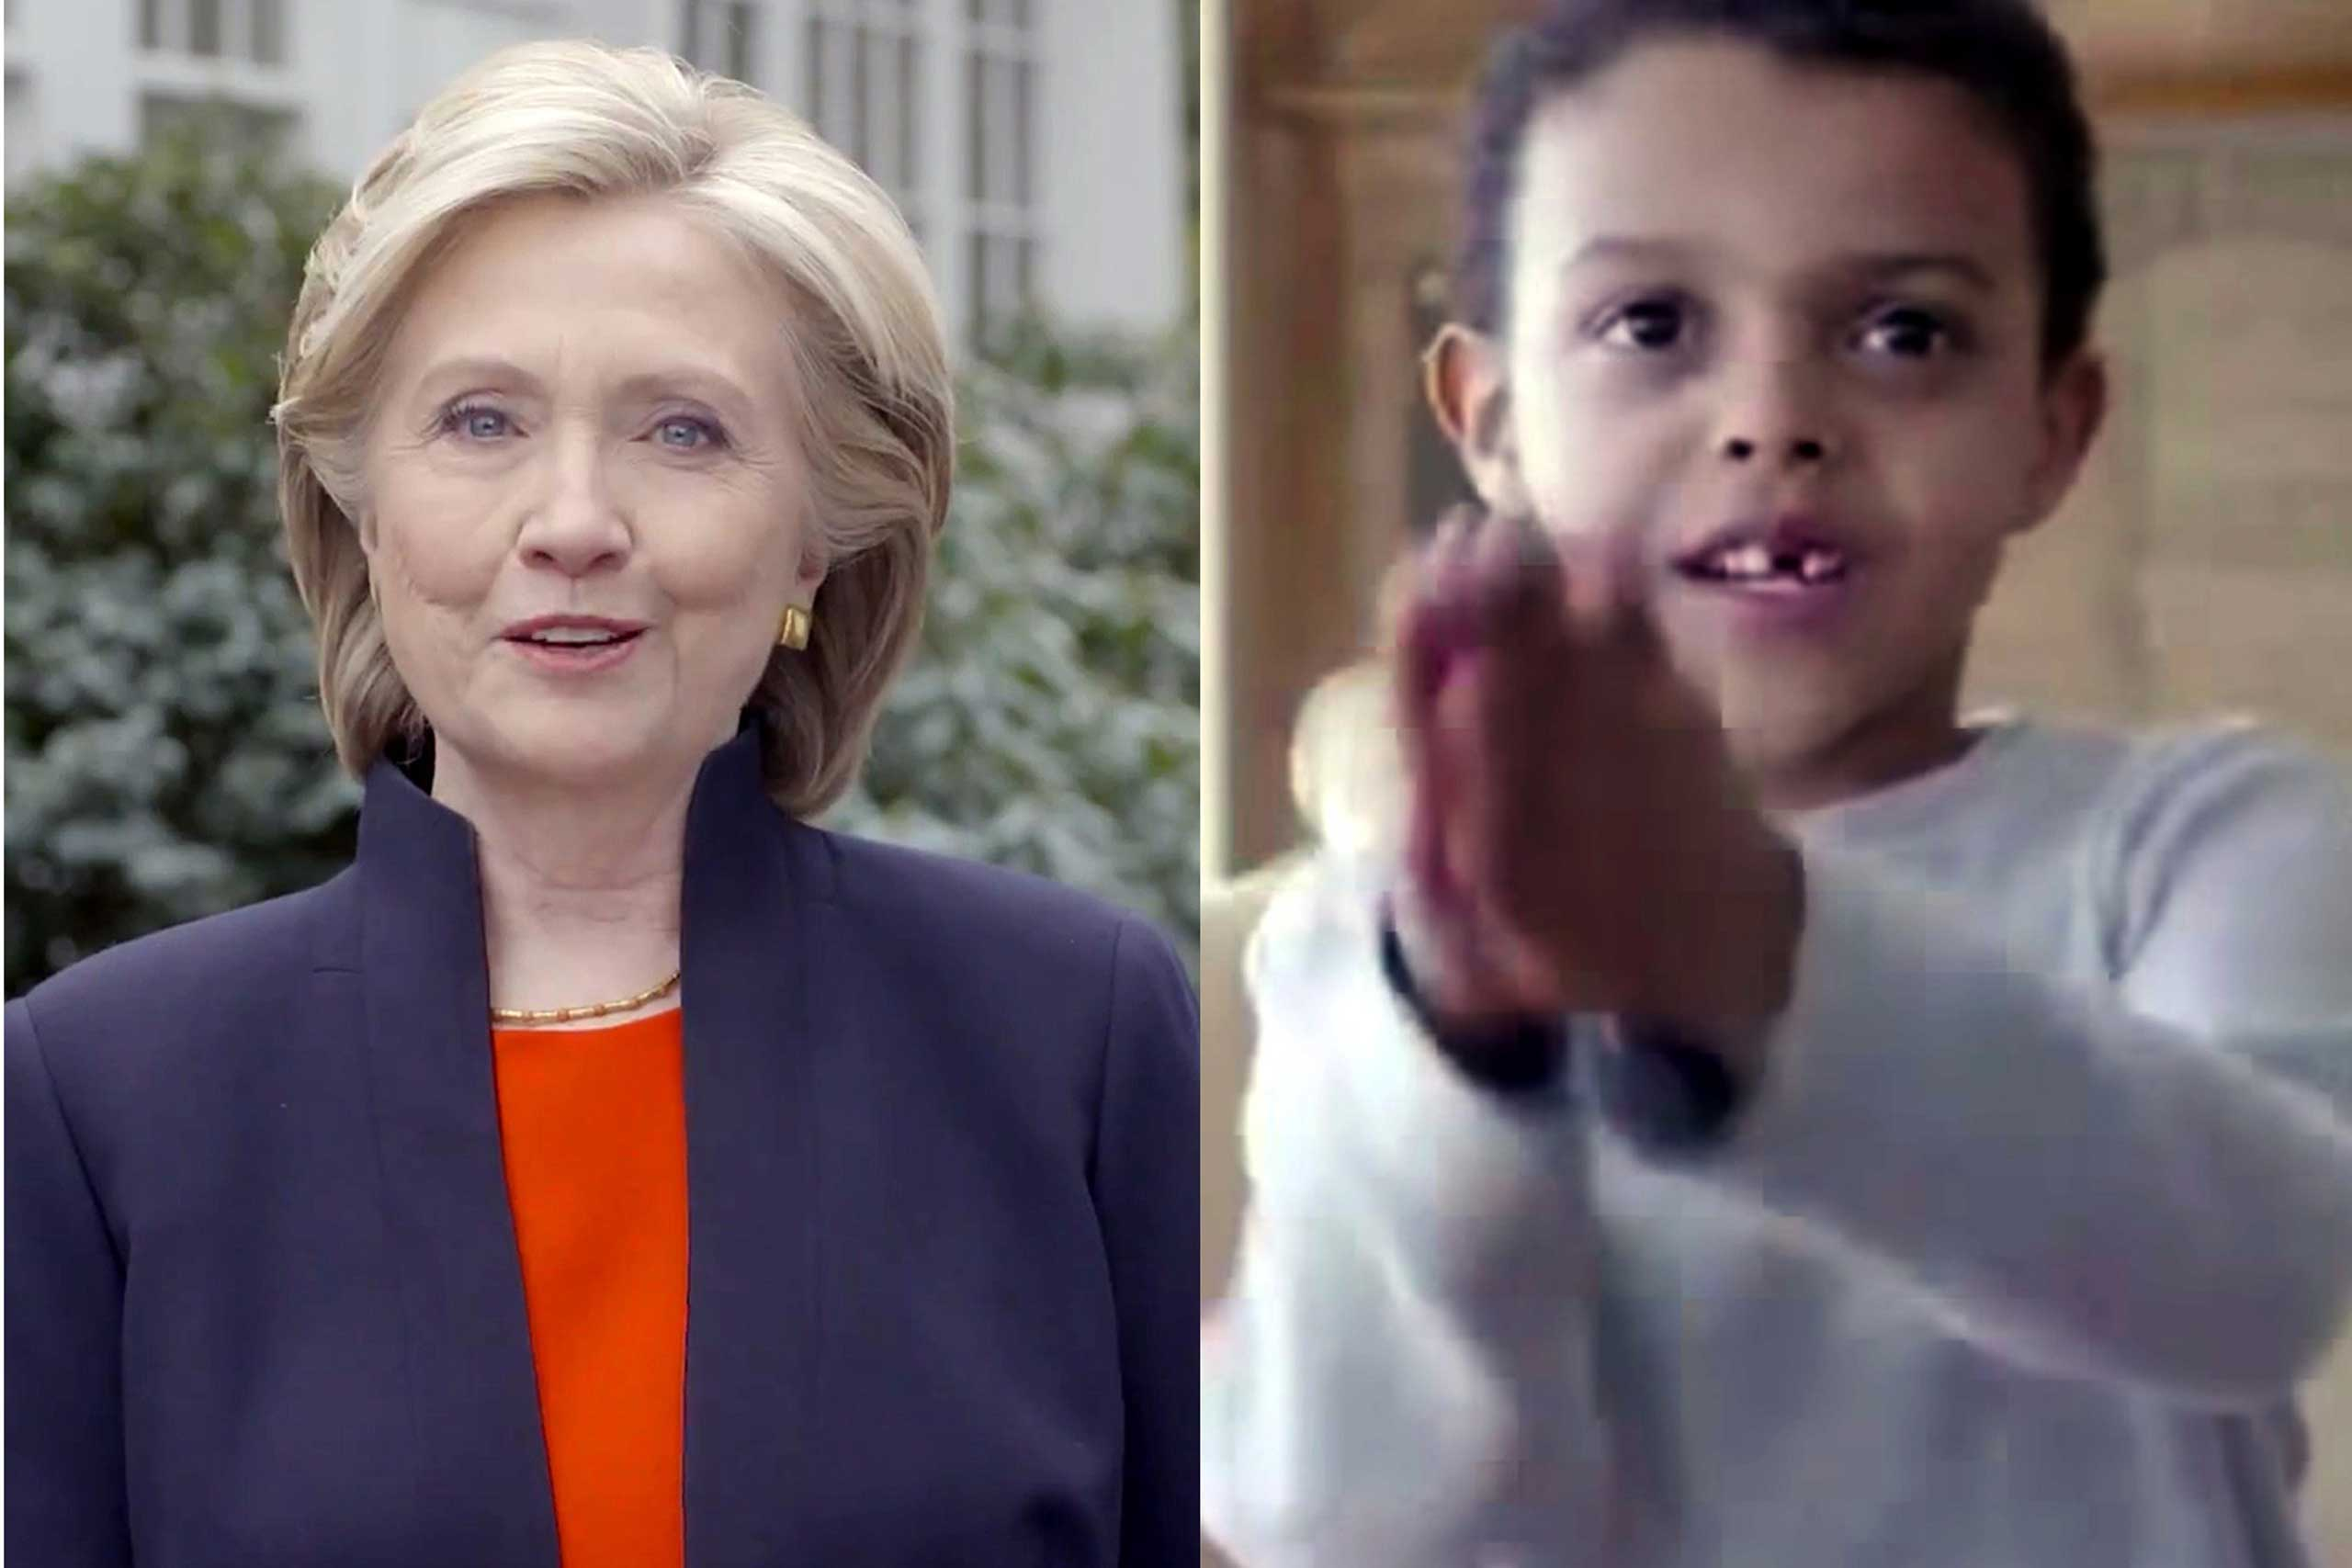 Former Secretary of State Hillary Clinton announced her campaign in a YouTube video posted April 12 that has been seen nearly 4.5 million times. One boy featured in the video boasted about playing a fish in a school play.